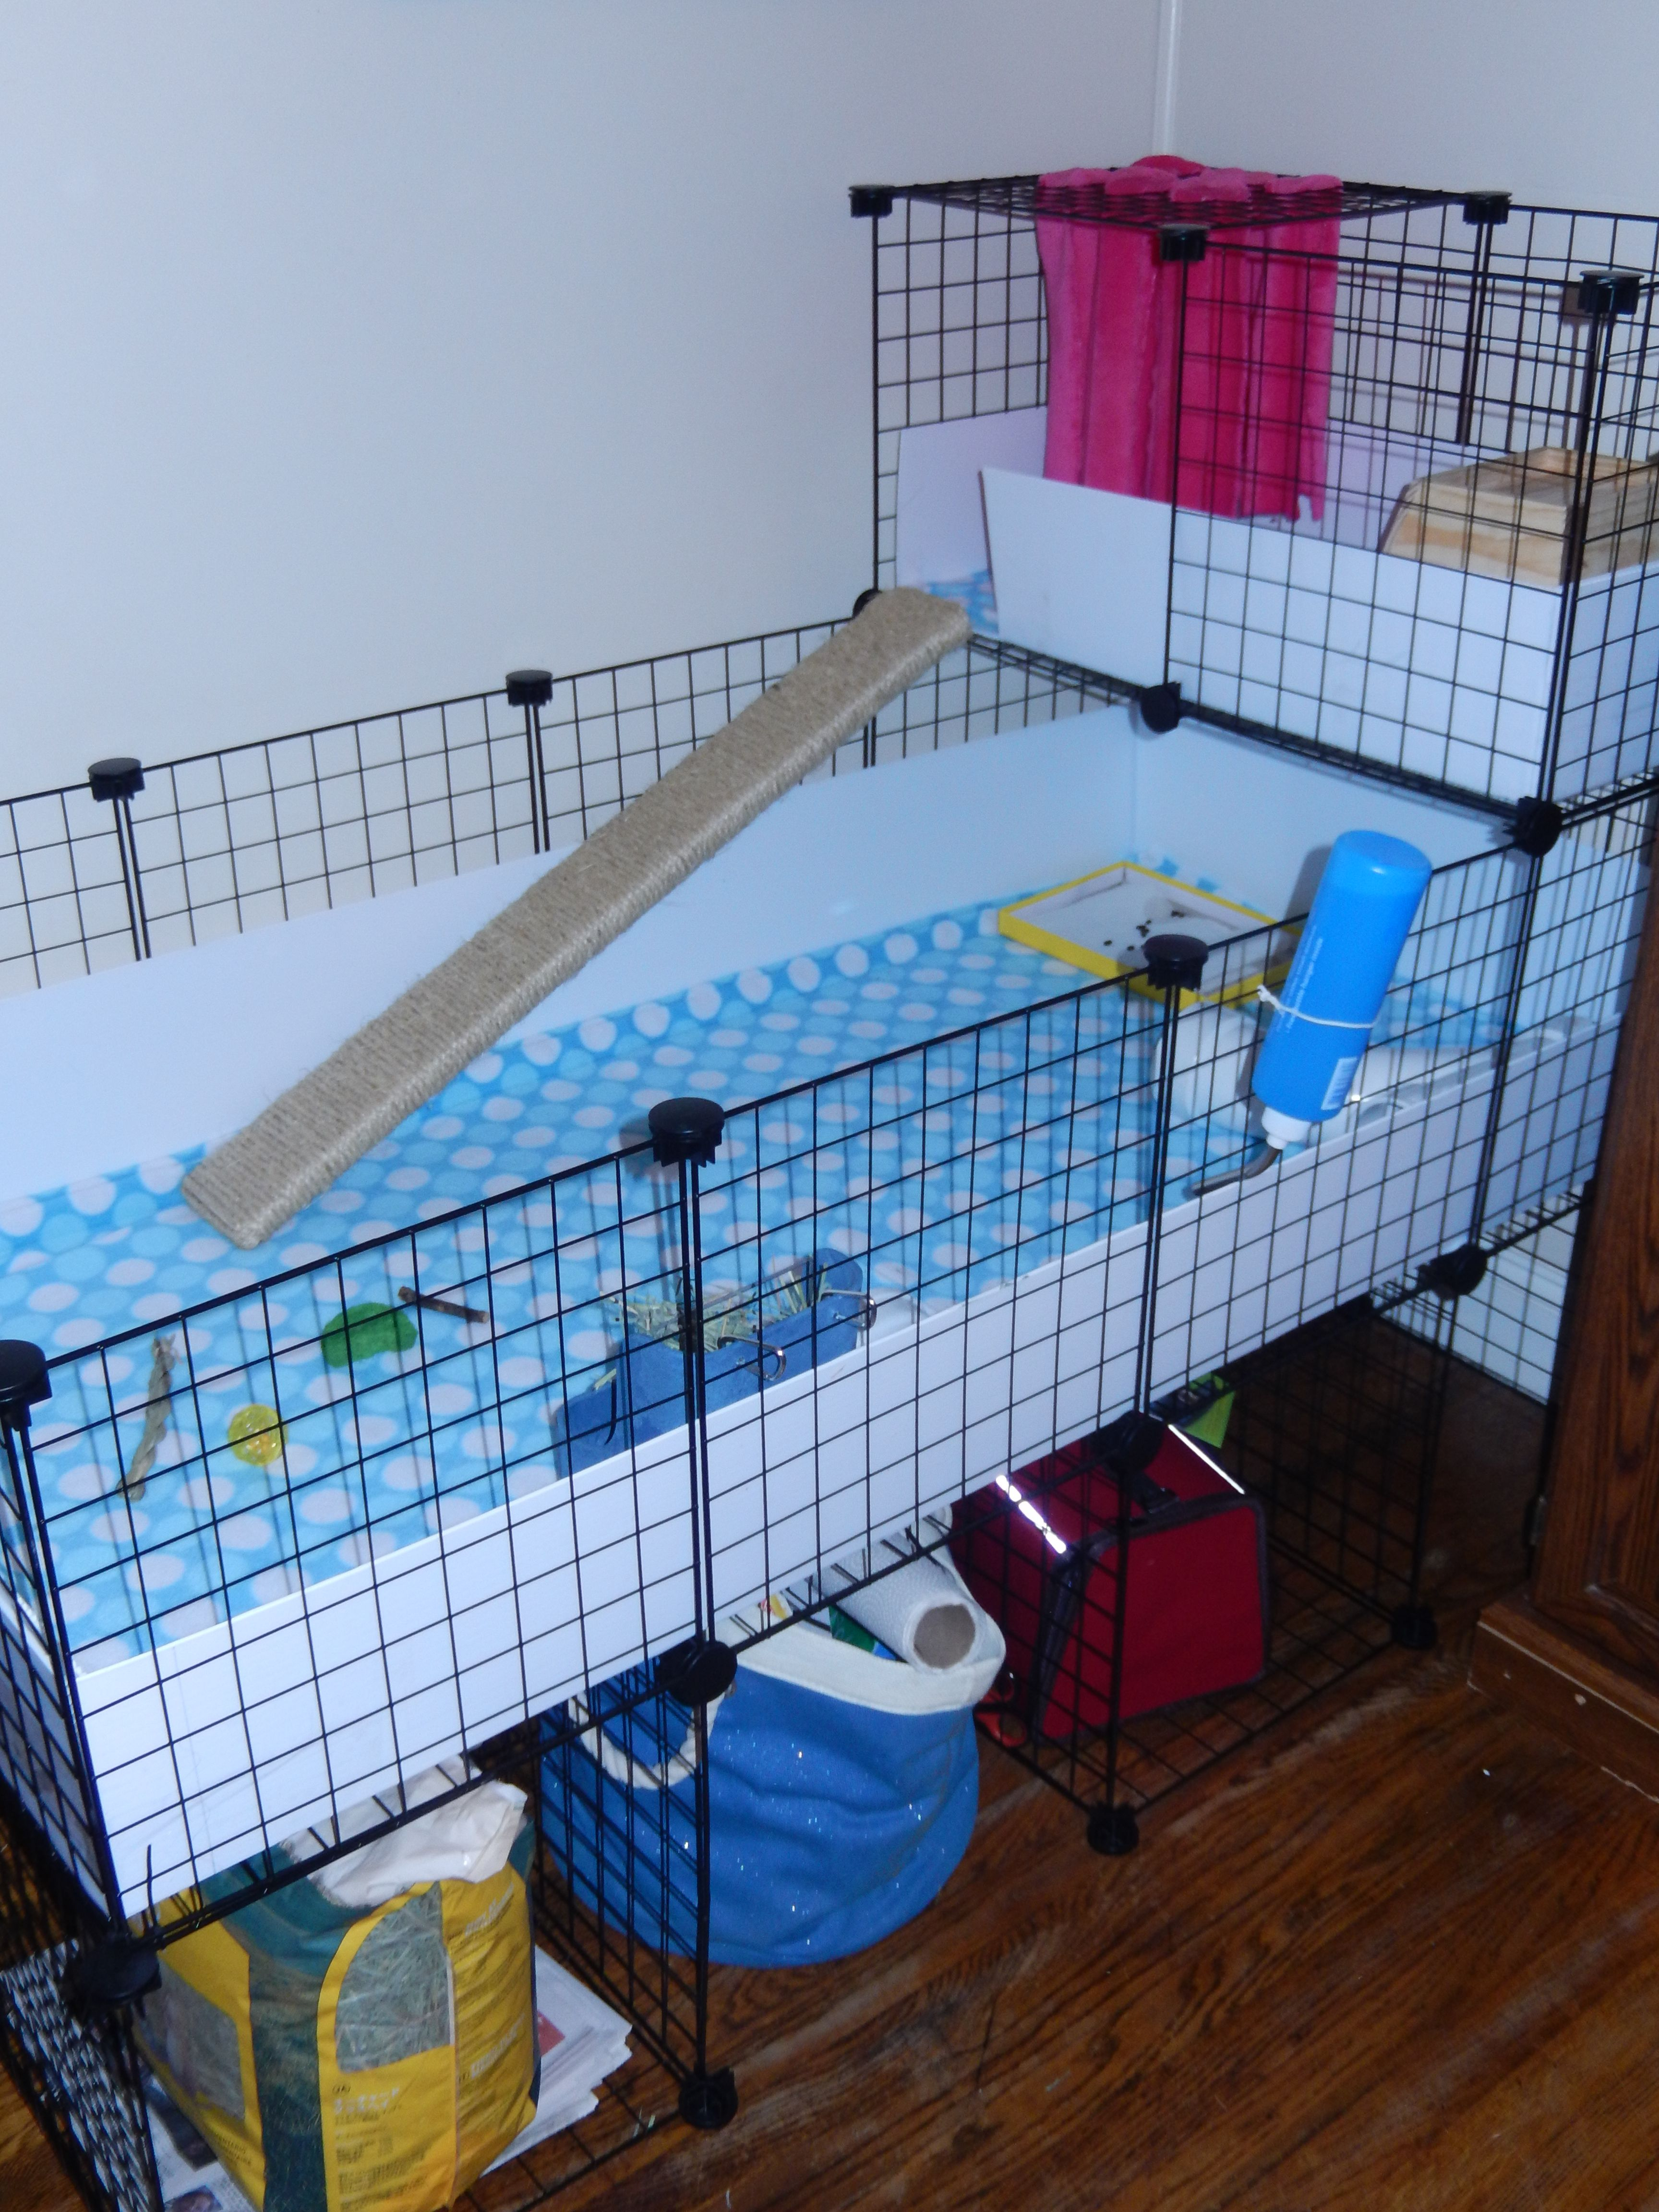 My super hubby built this fabulous c&c cage, and I made the fleece ...